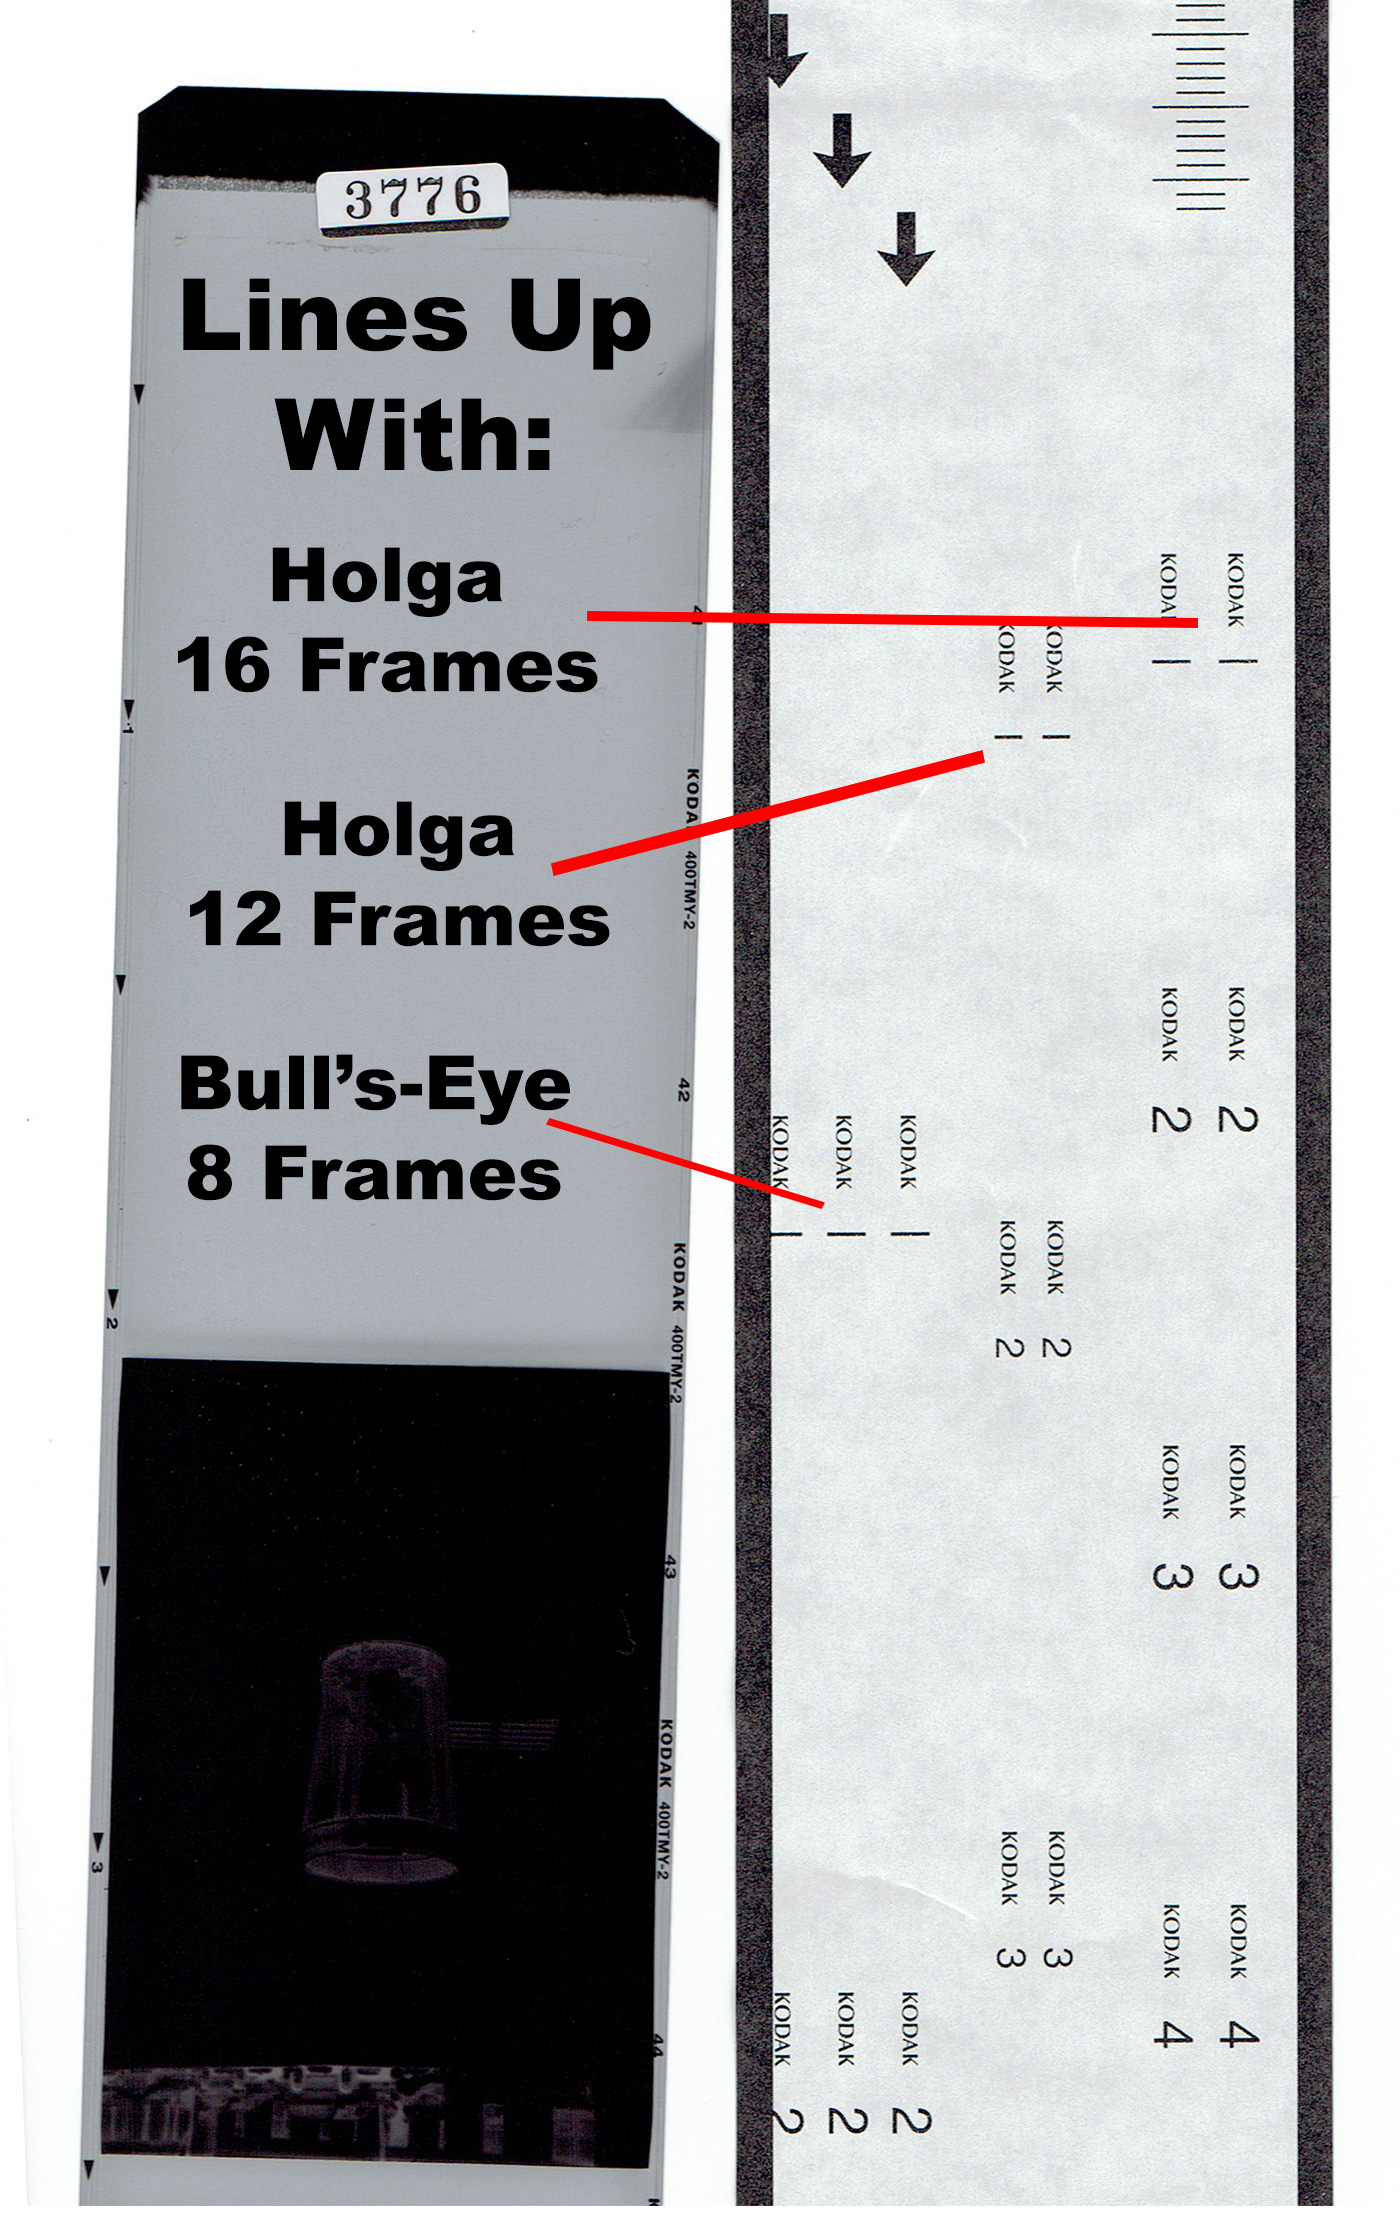 Figure 2. Frame numbers are spaced according to camera format/exposures.